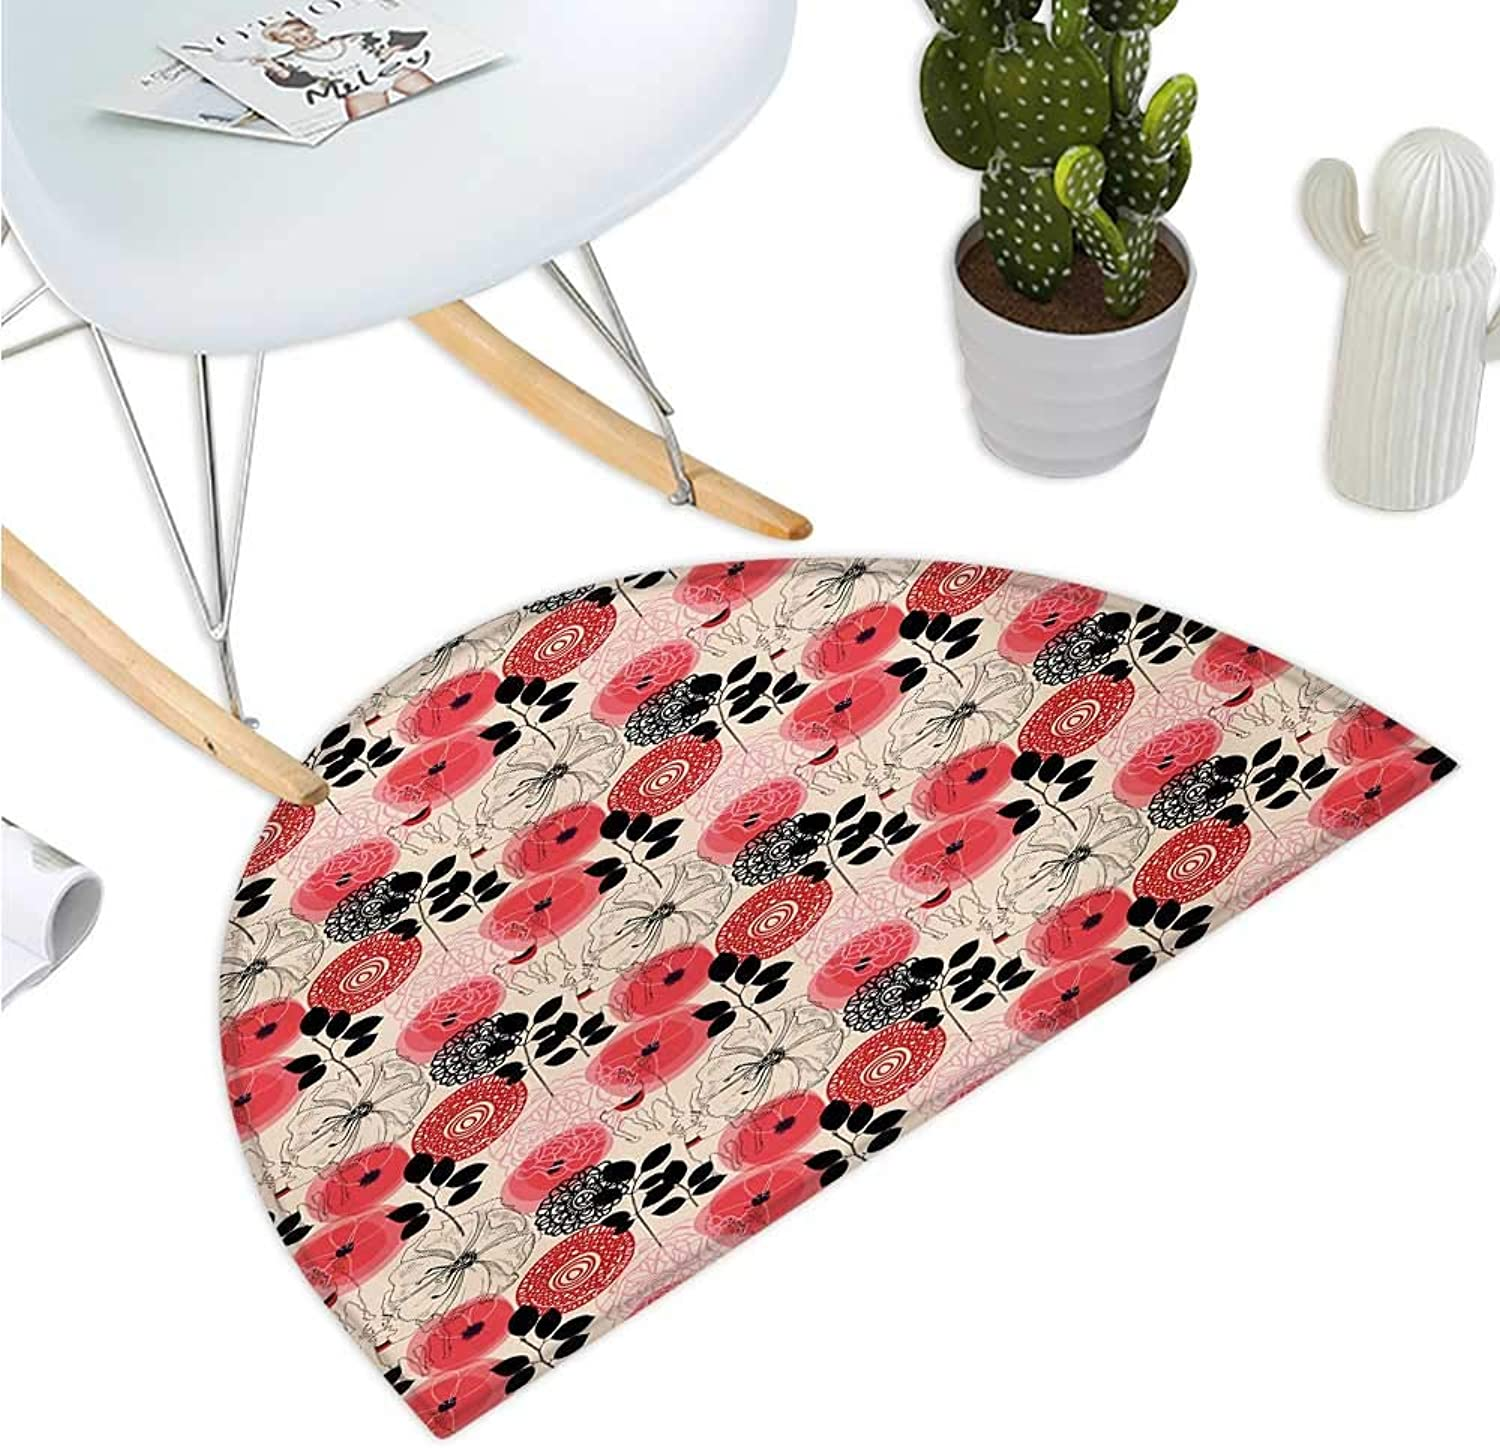 Floral Semicircular Cushion Modern Abstract Big Circled Abstract Flowers Blossoms and Leaves Artwork Print Entry Door Mat H 35.4  xD 53.1  Pink and Black